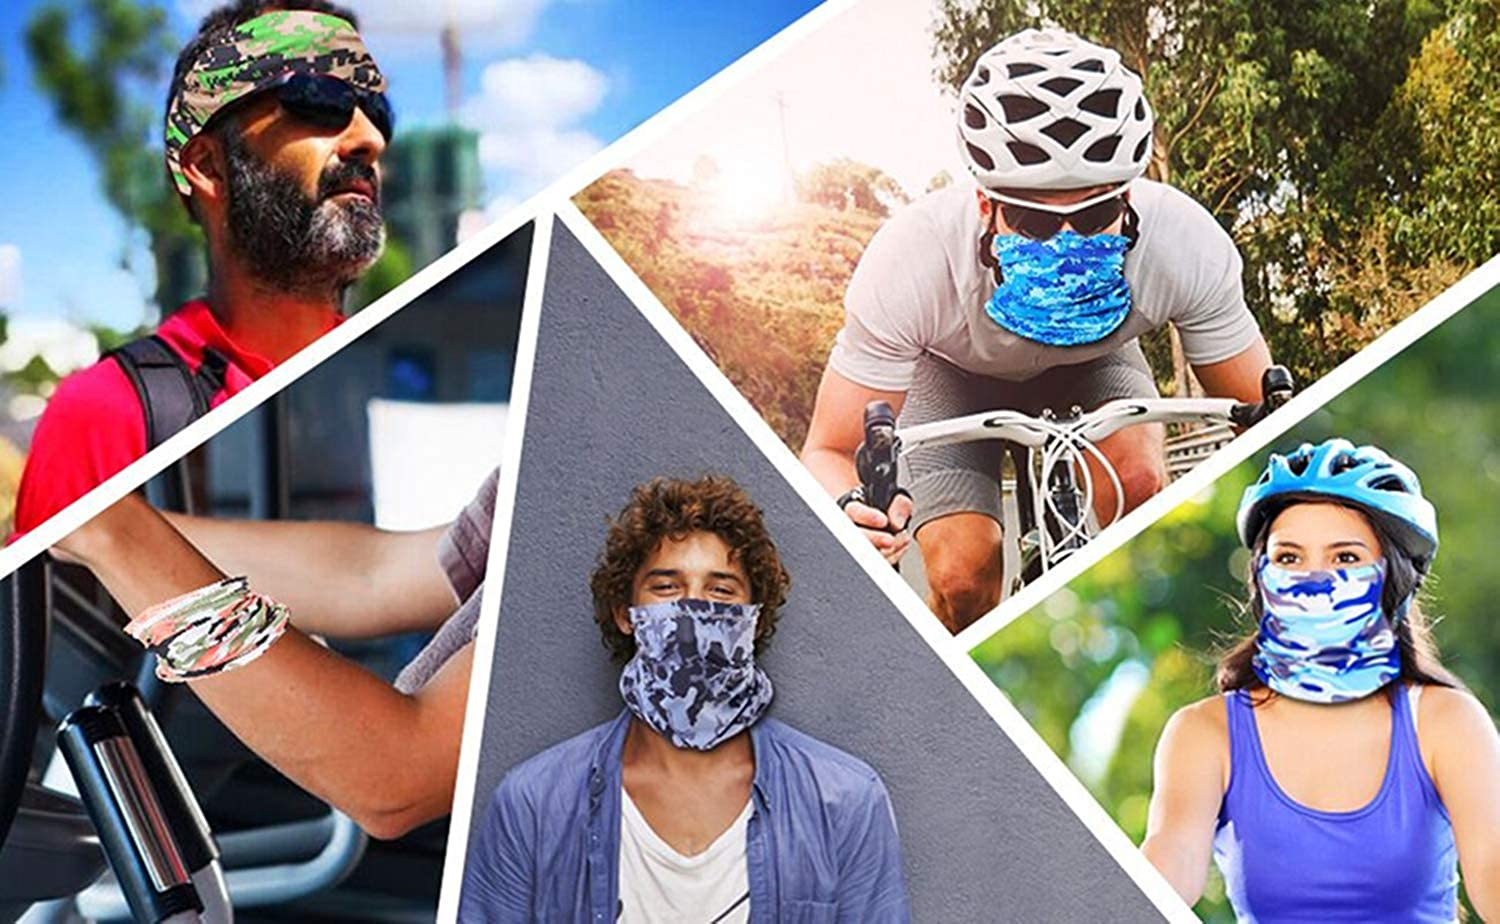 Cooling Neck Gaiter Face Mask Bandana Face Cover Mask Scarf Silk UV Protection Dust Face Shield Balaclava for Riding Fishing Cycling 5 Pcs Motorcycle Masks for Men Women